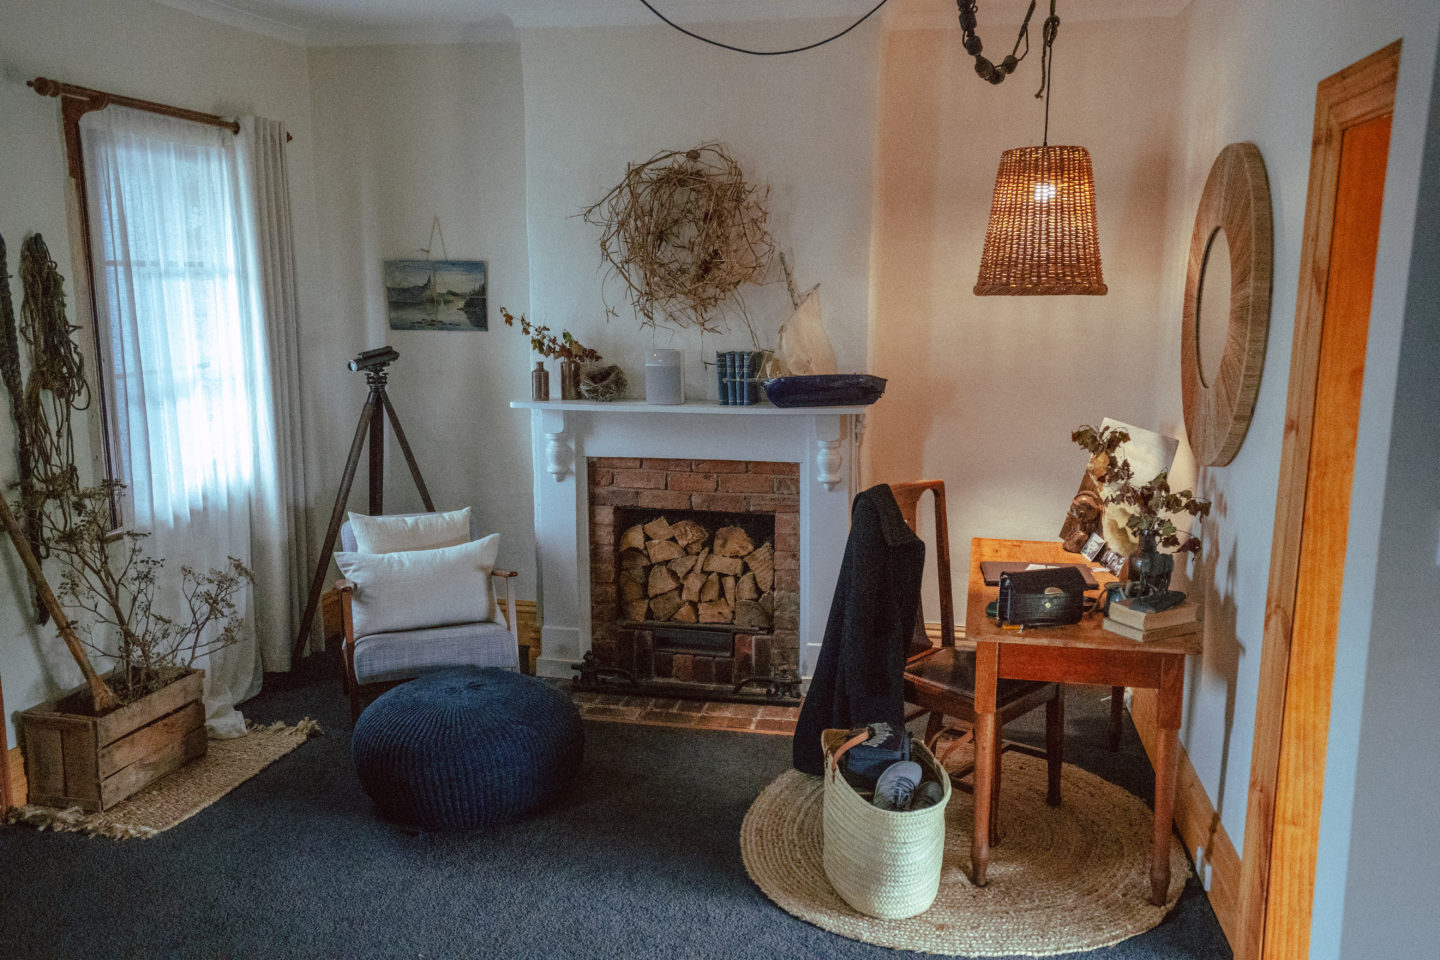 Captains Cottage in Your Guide to Hobart